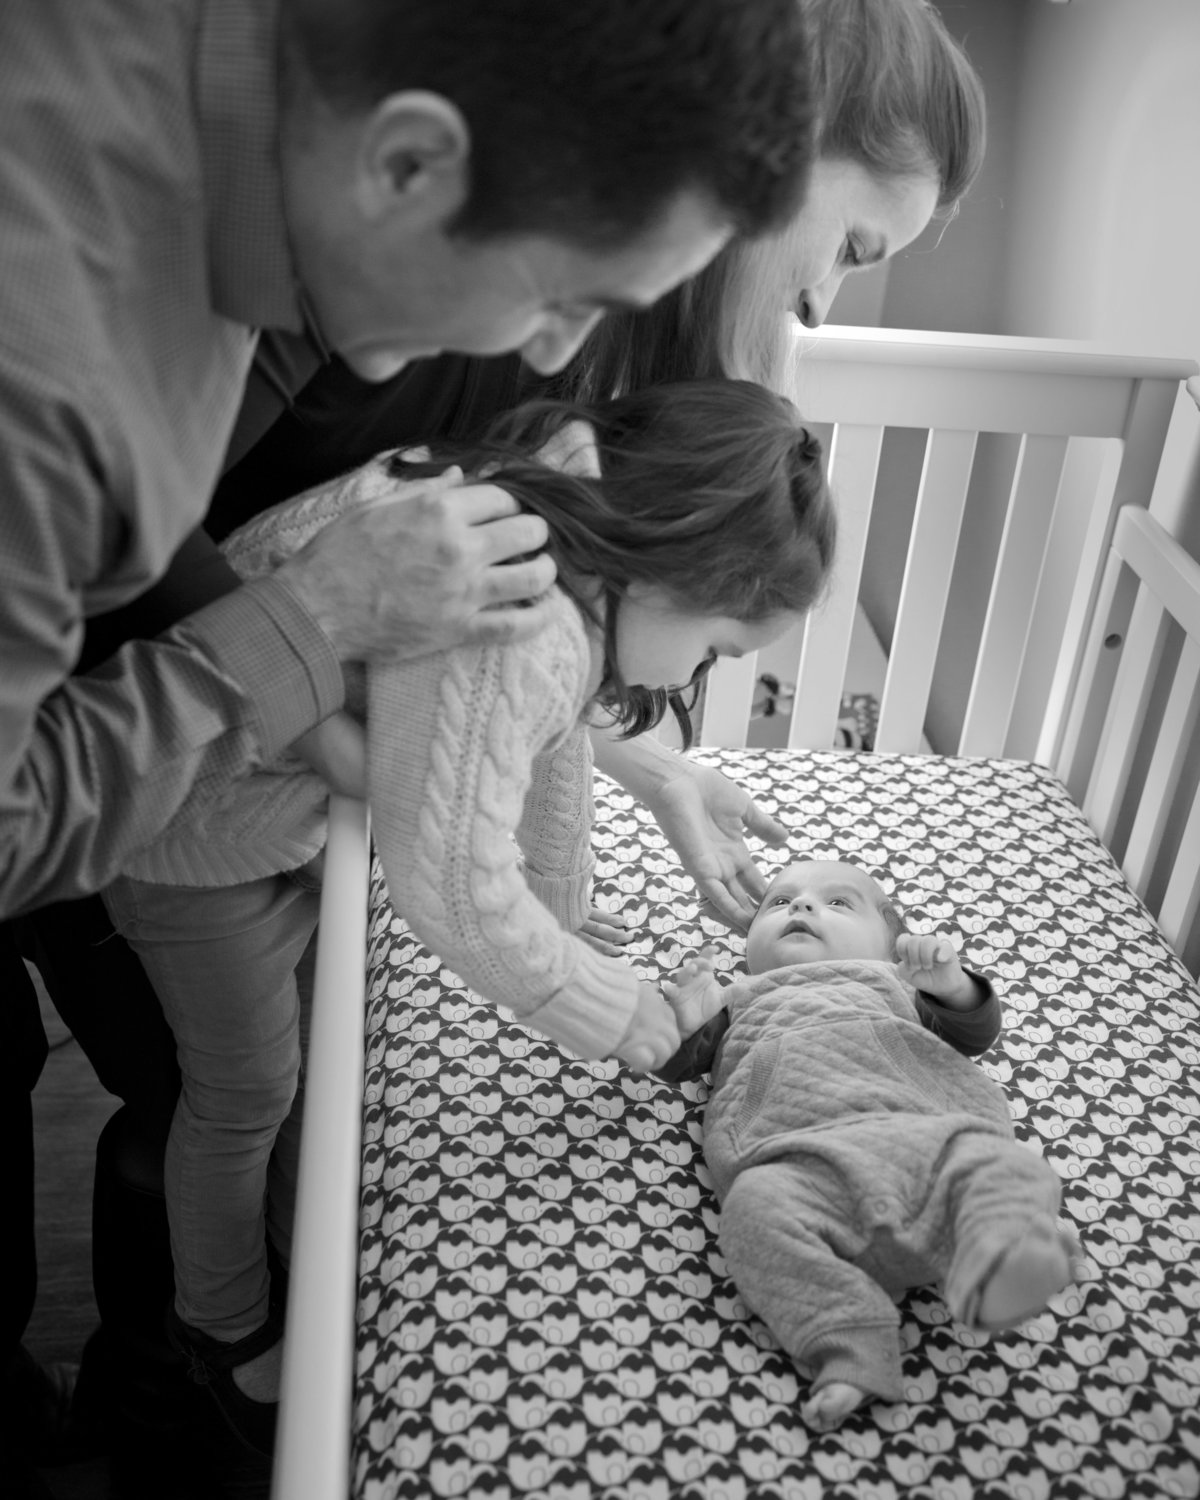 Family welcomes newborn baby, lifestyle newborn photography, black and white newborn photographer, Alexandria, VA